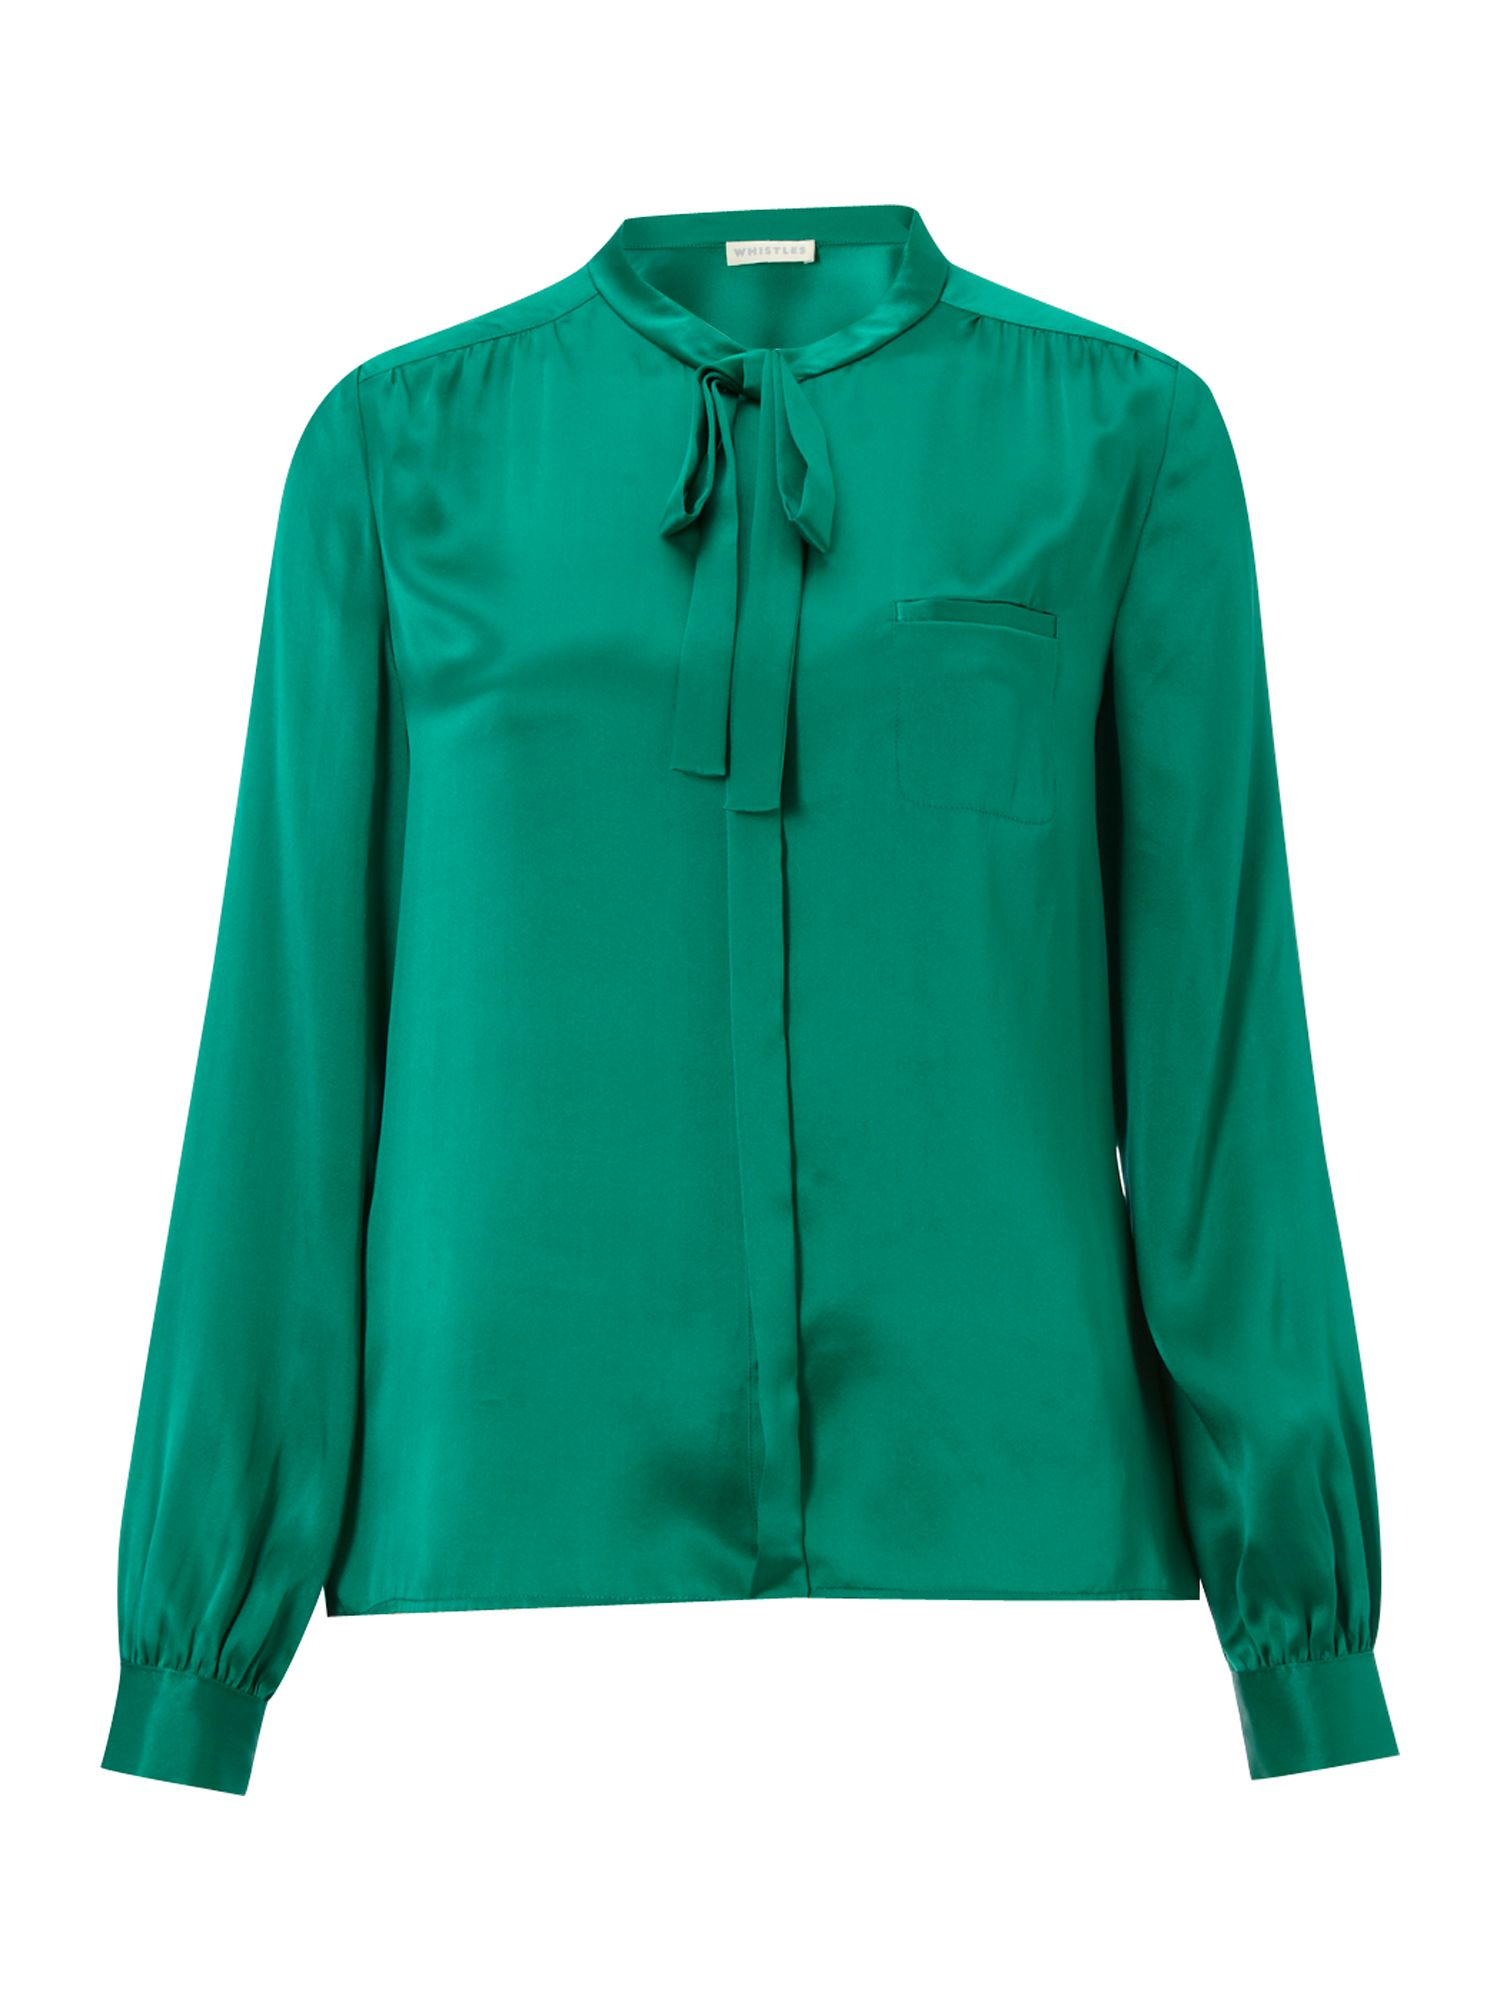 Whistles Womens Whistles Lulu tie neck blouse, Green product image